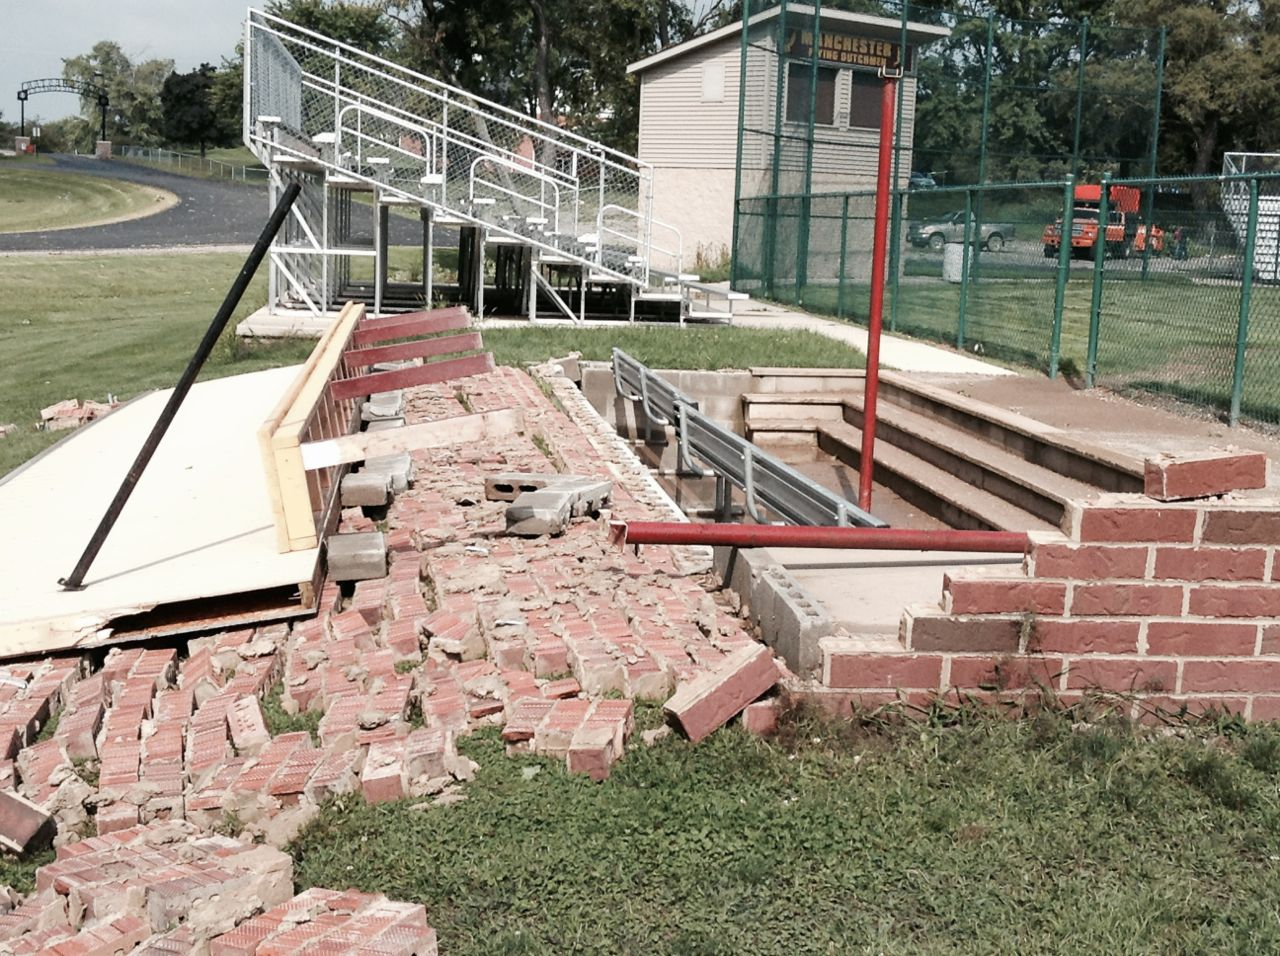 Baseball Dugout Flattened Power Outages Experienced As A